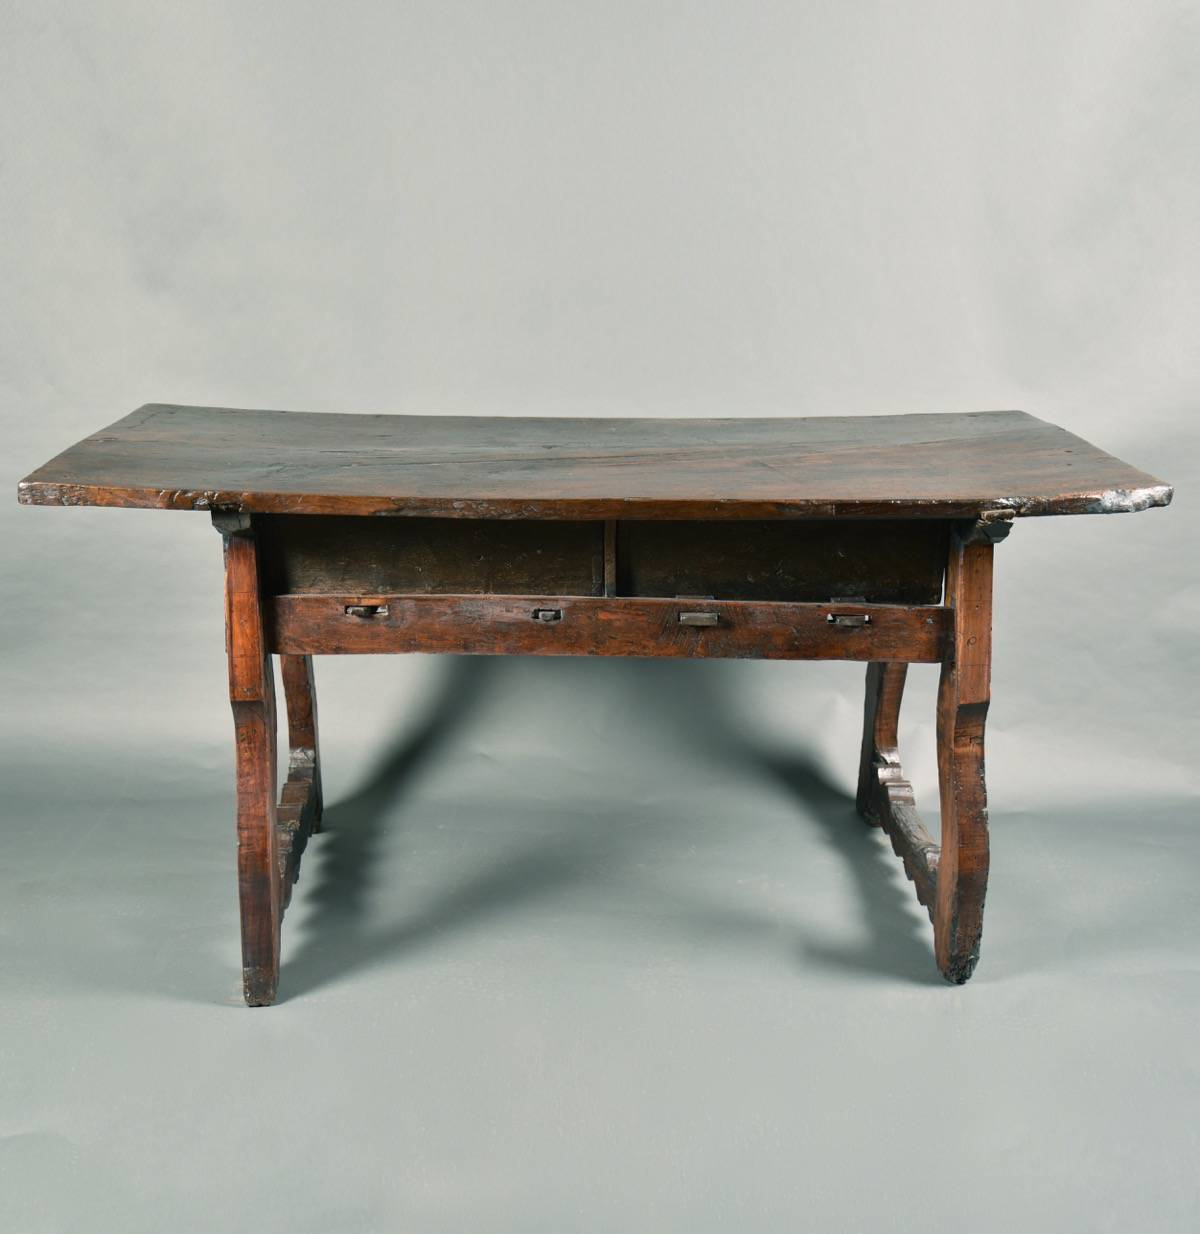 Rustic spanish table de grande spanish antique furniture for Antique furniture